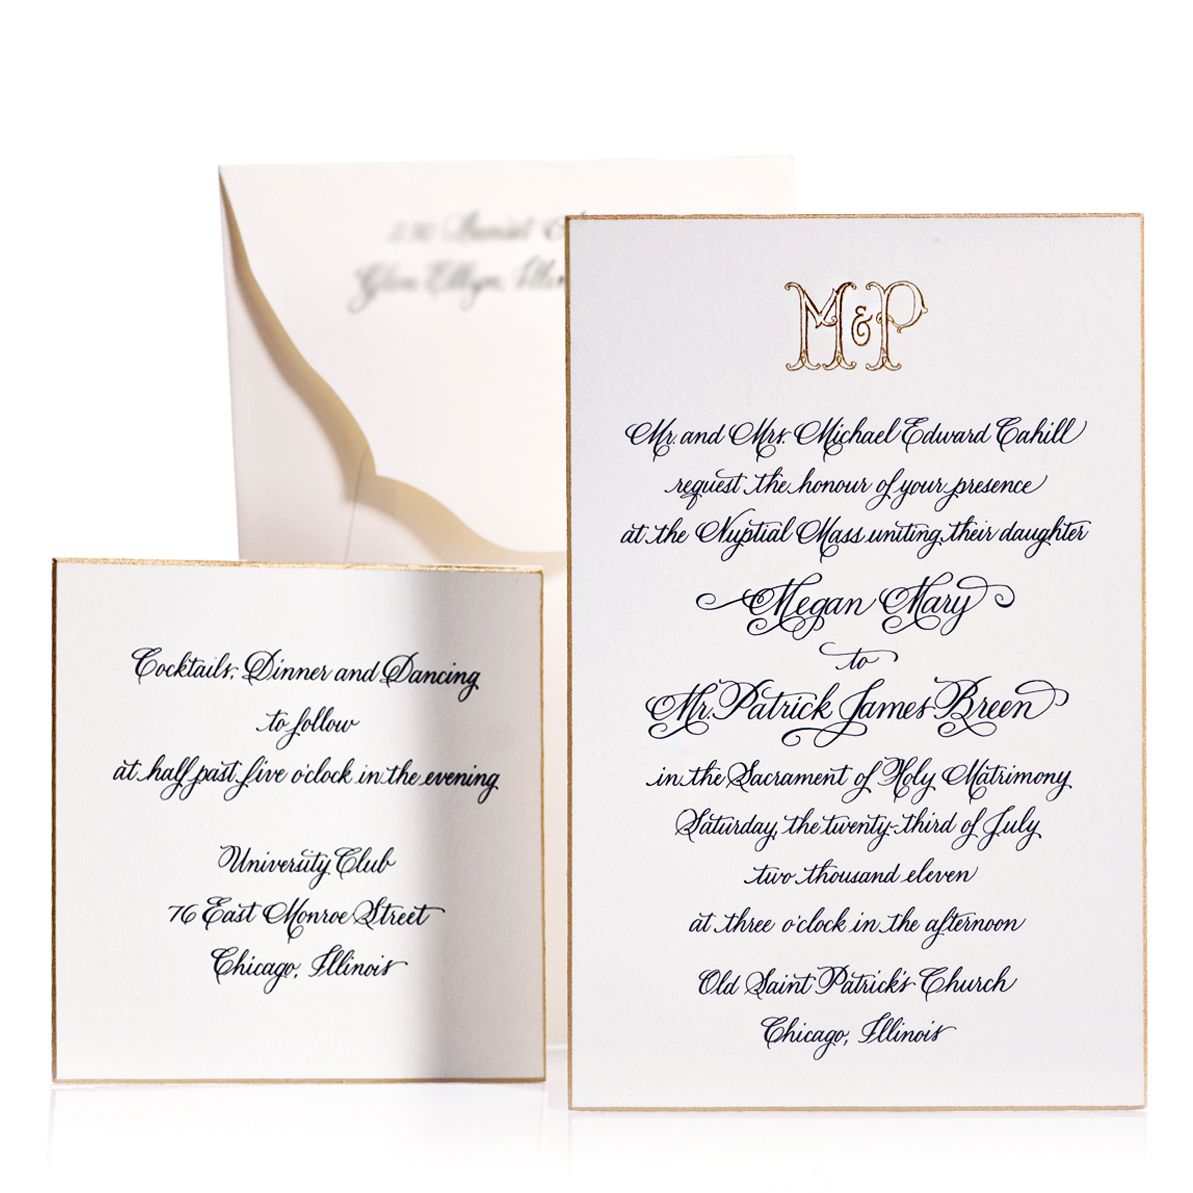 classic formal engraved wedding invitation with a proper wedding ...